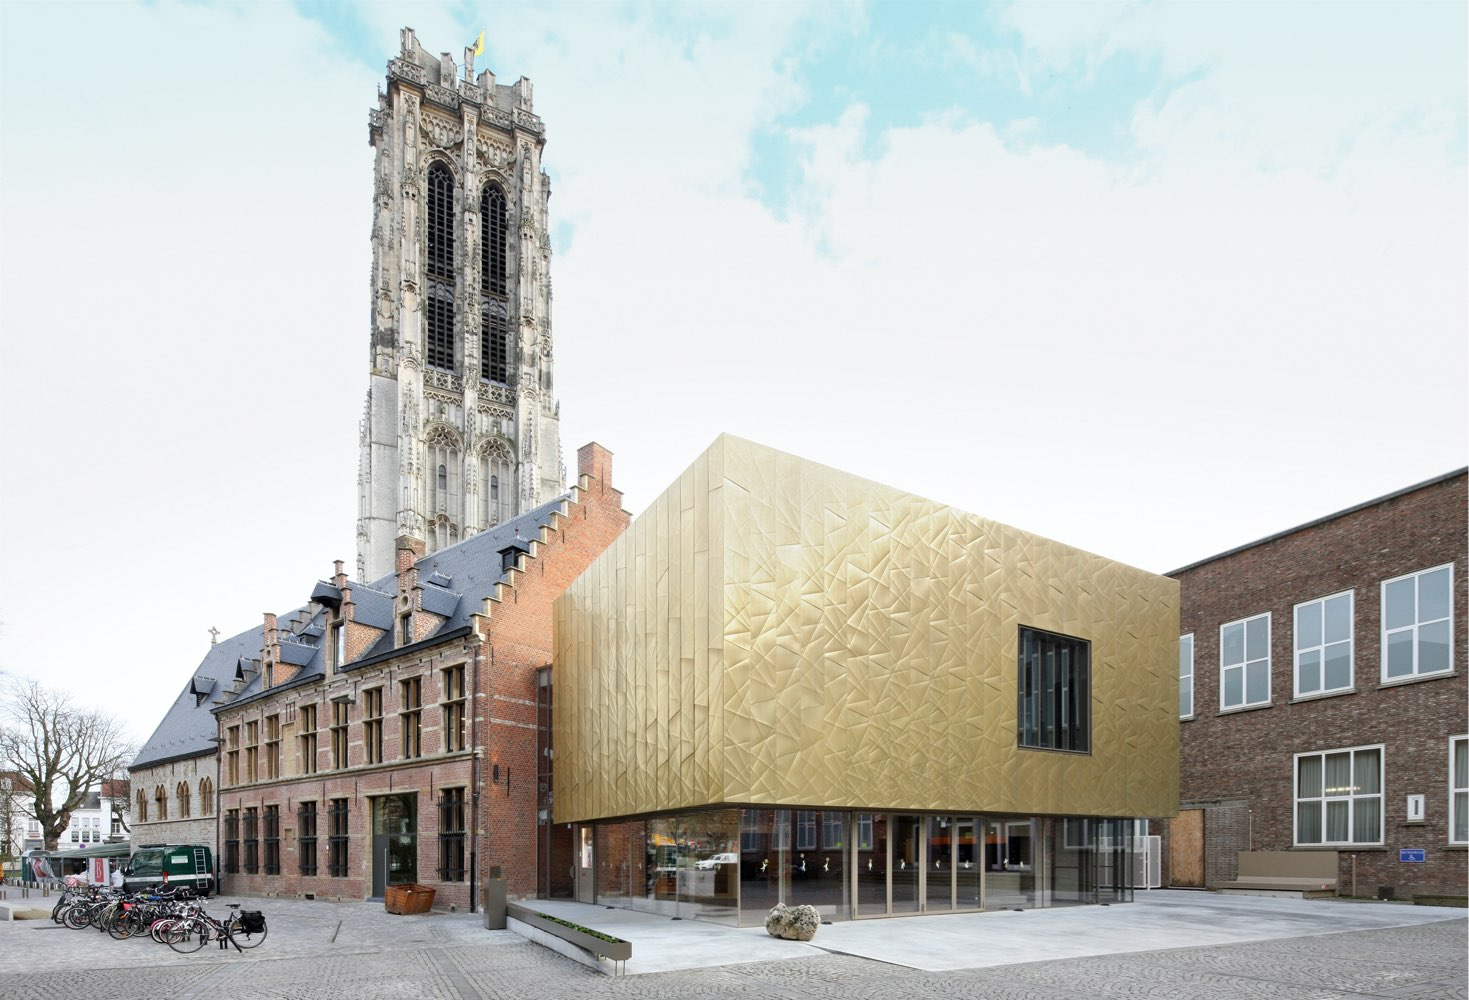 A view from the front of the Moon Art Centre located in Mechele, Belgium. The building has gold-coloured walls called Nordic Royal Copper, made by Aurubis. The facade has a singular window and multiple doorways. The copper walls have small folds and creases for aesthetics. It is daytime outside. Some bicycles can be seen in the photo. An old and tall tower is in the background.